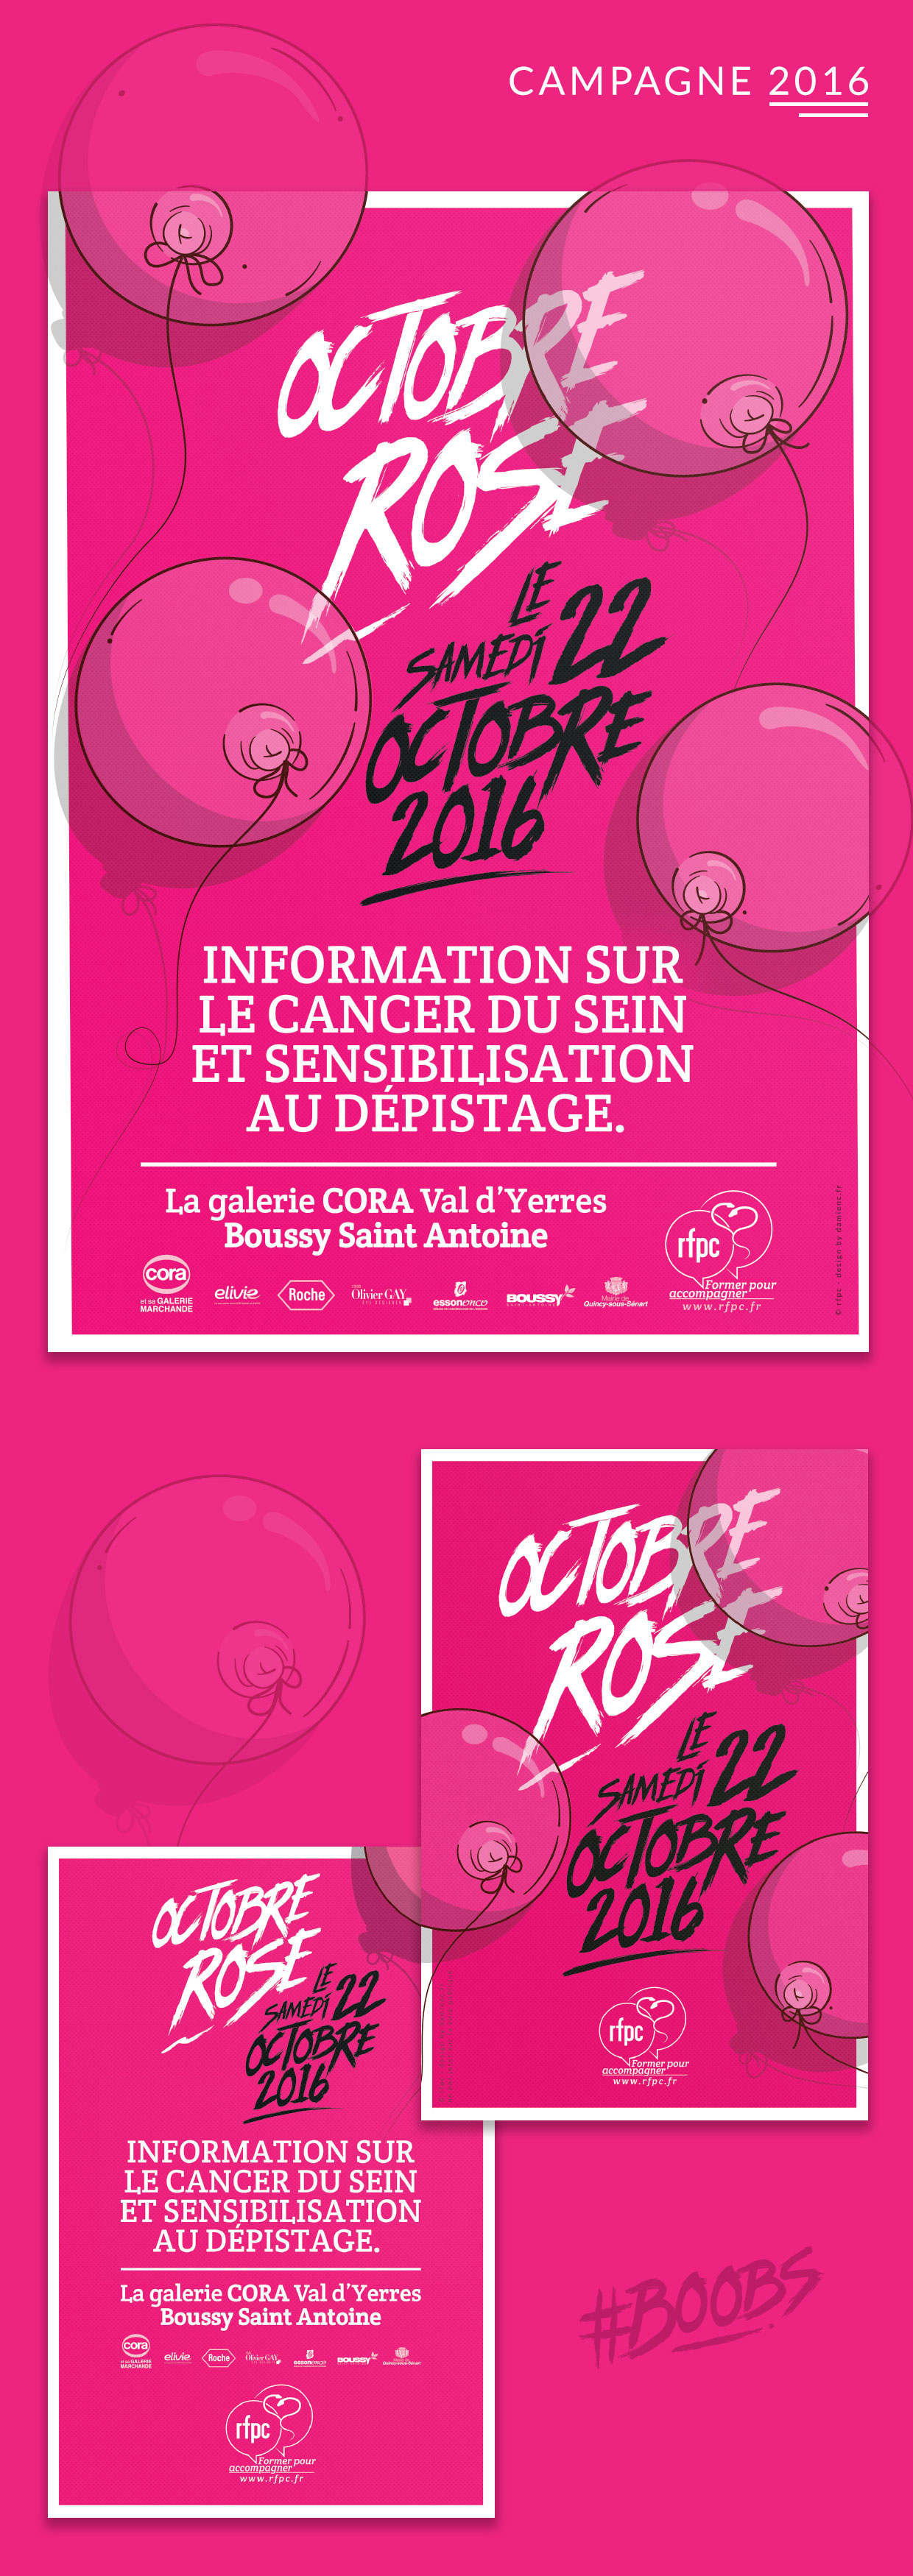 Octobre rose 2016 by DamienC.fr